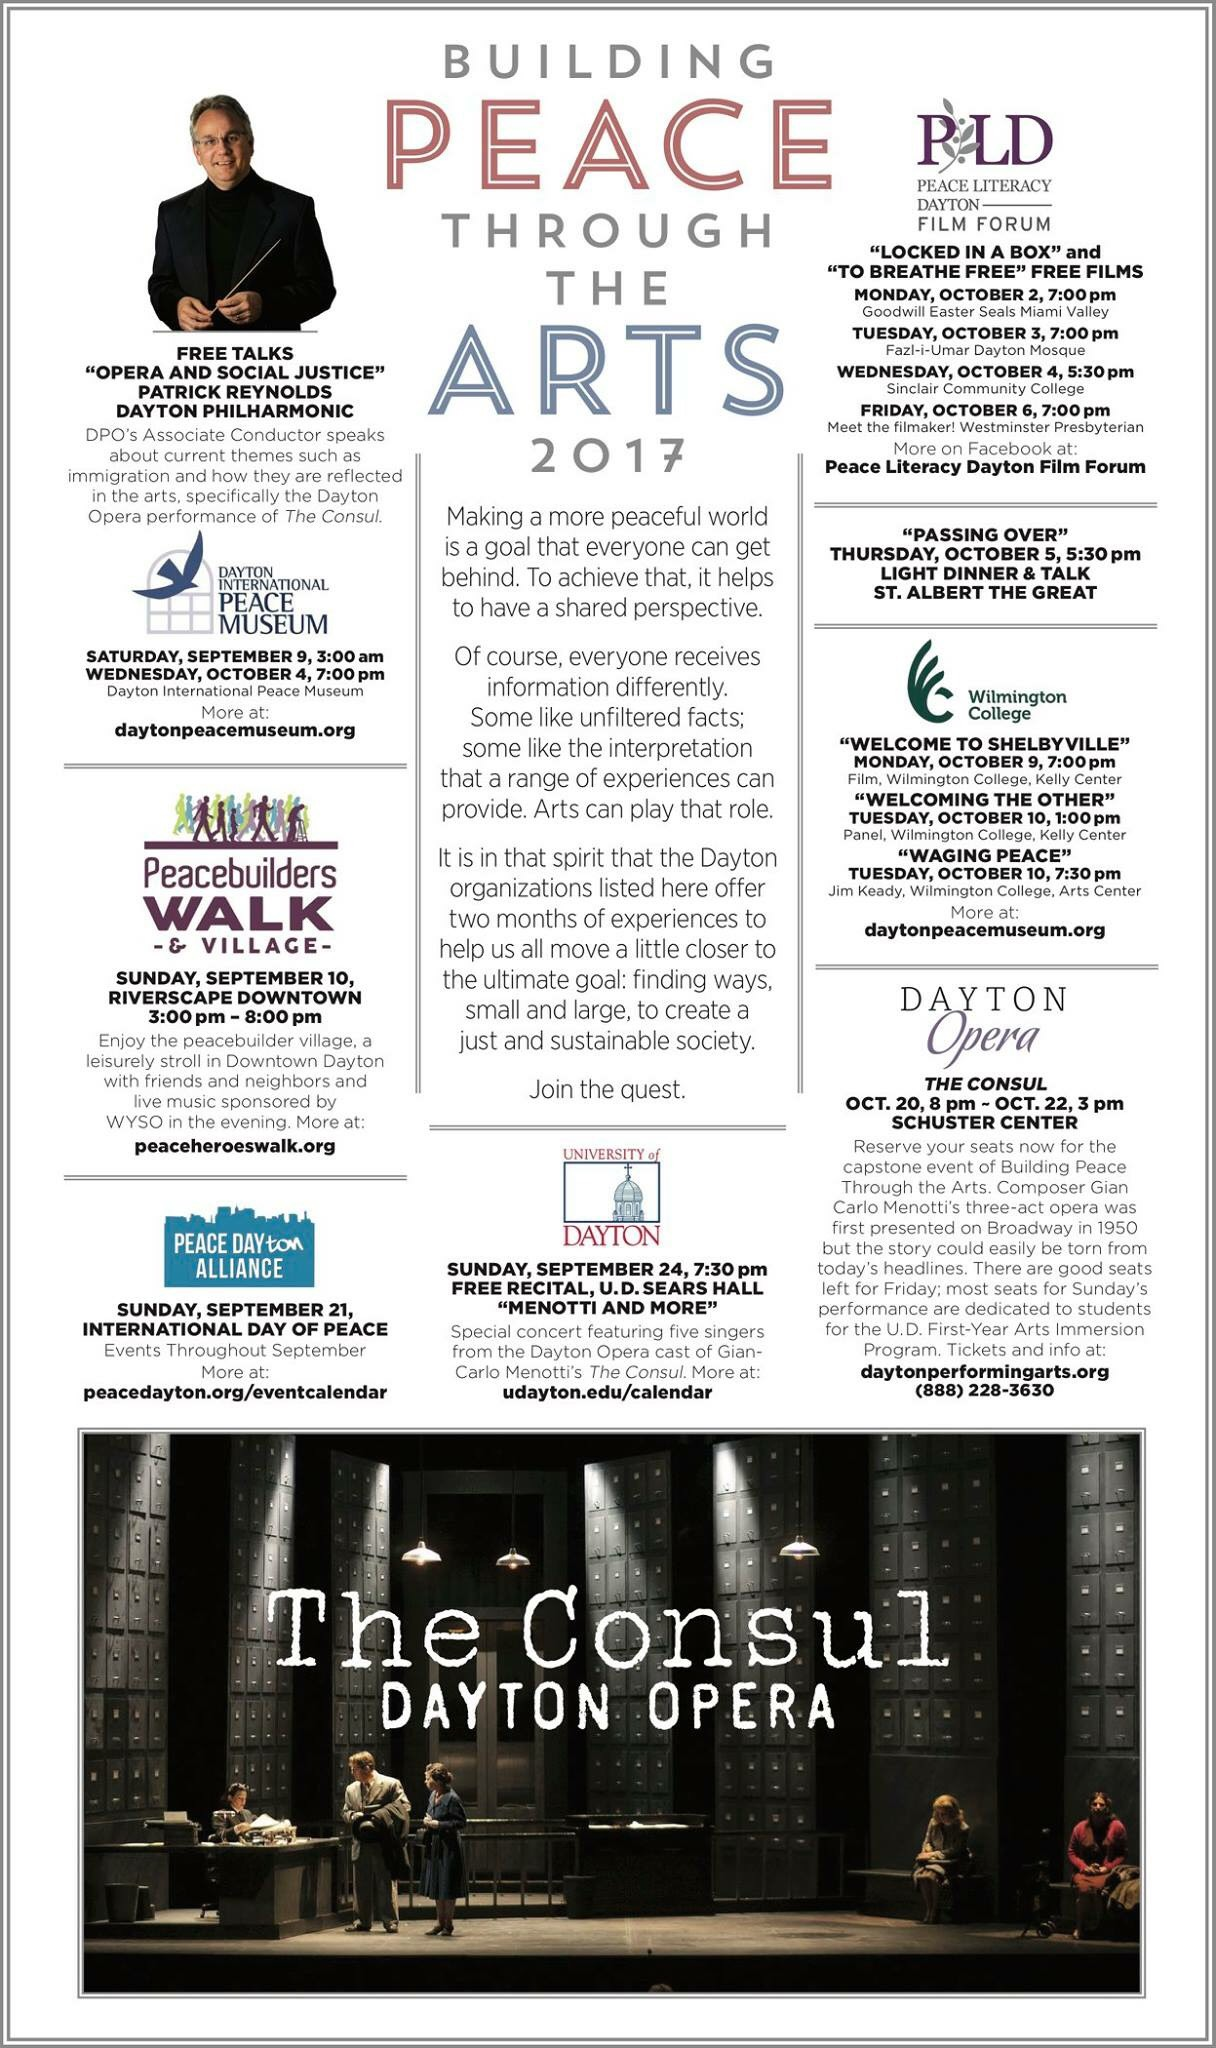 Building Peace Through The Arts, Dayton Daily Newspaper ad